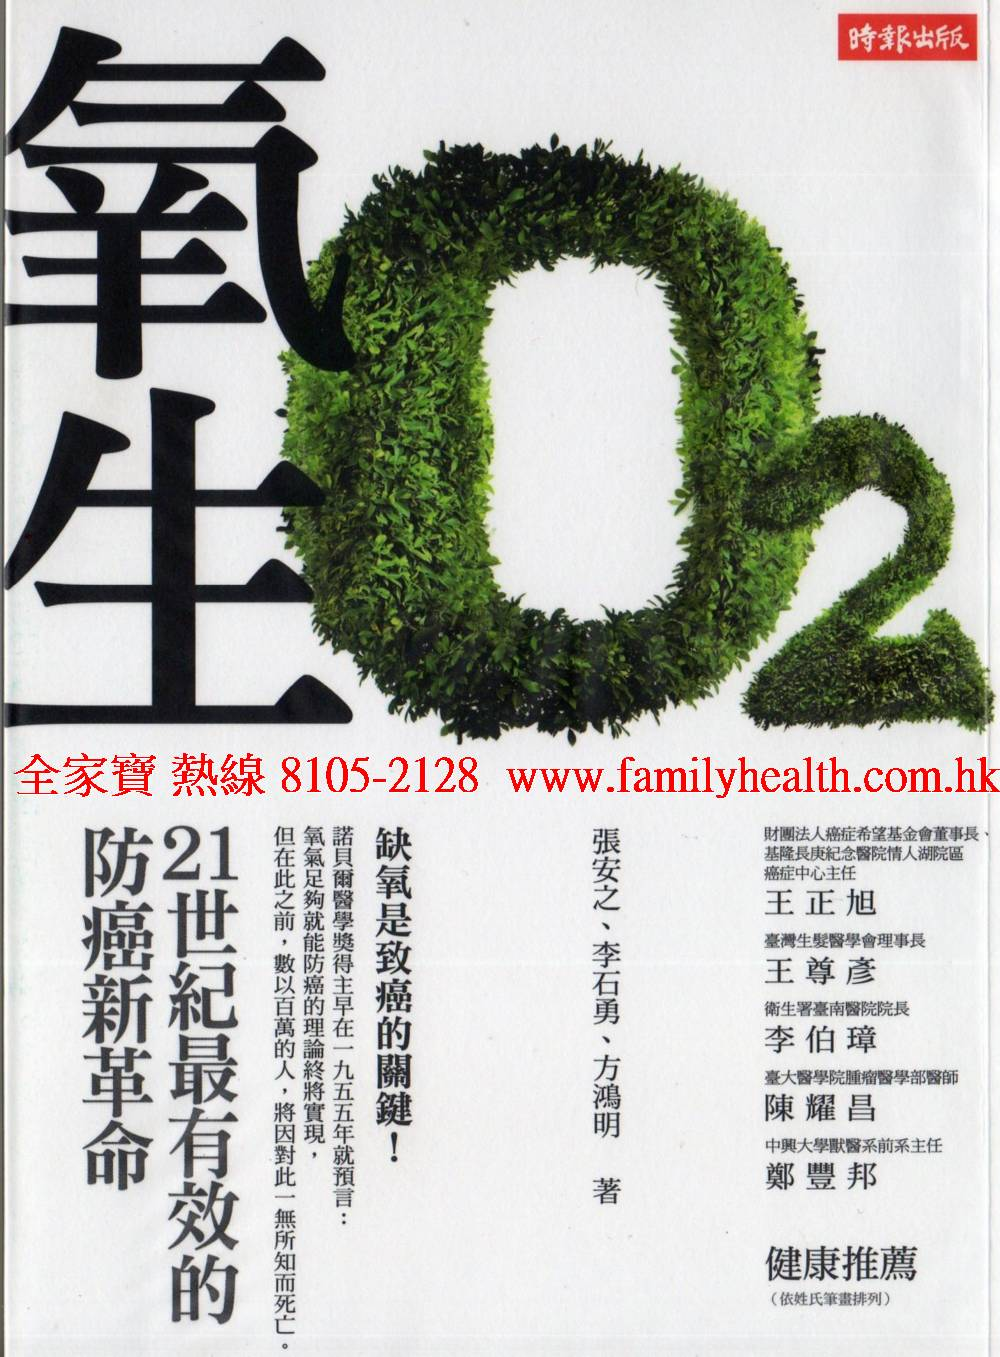 http://www.familyhealth.com.hk/files/full/871_0.jpg